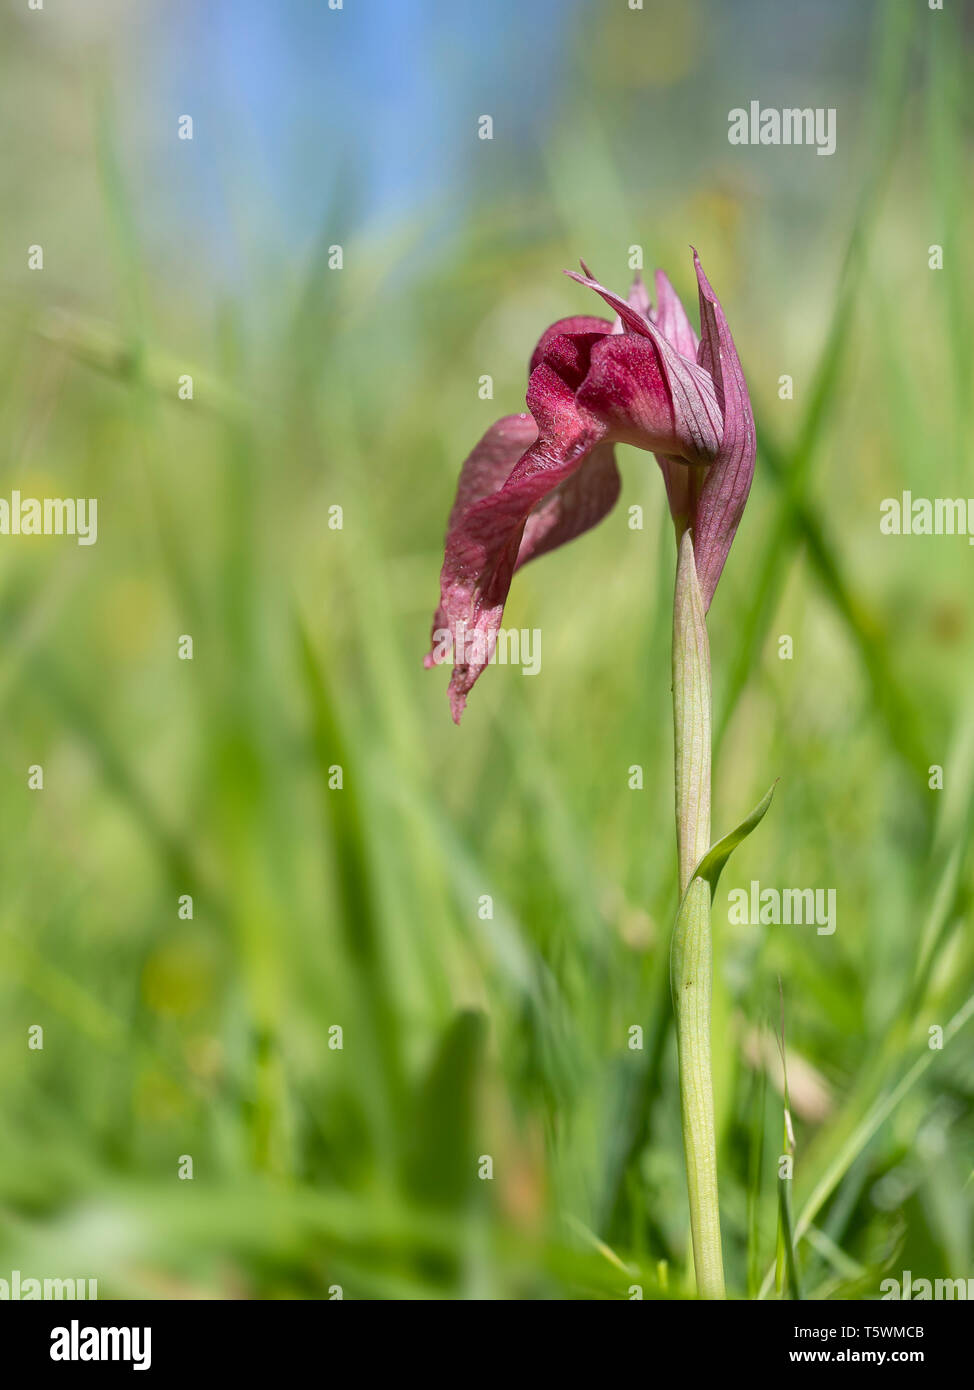 Serapias Lingua, Tongue orchid. Wildflower. Closeup with narrow depth of field, defocussed background. - Stock Image